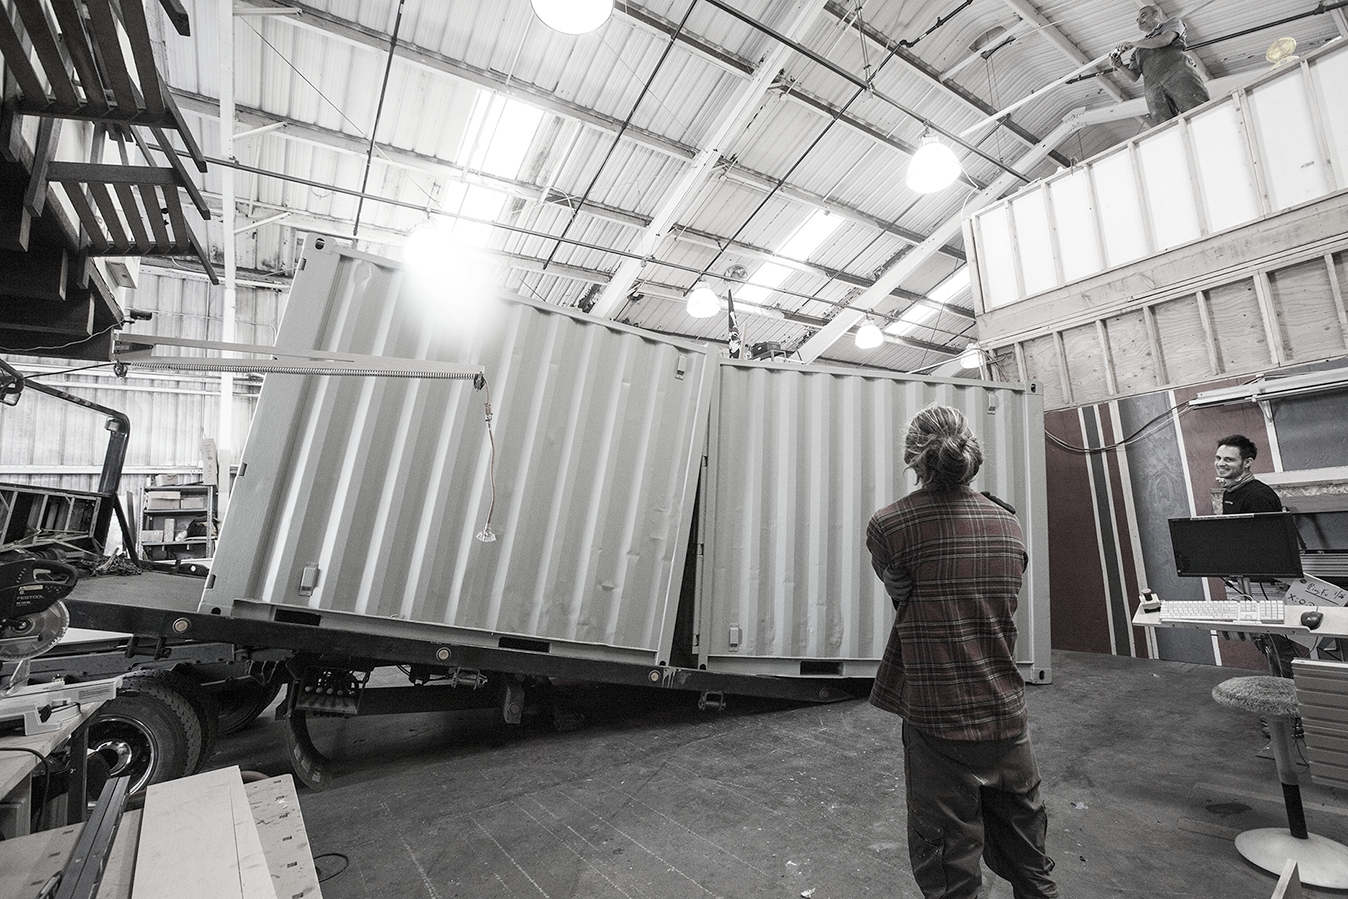 The containers arrive at our fabrication shop, ready for modification.